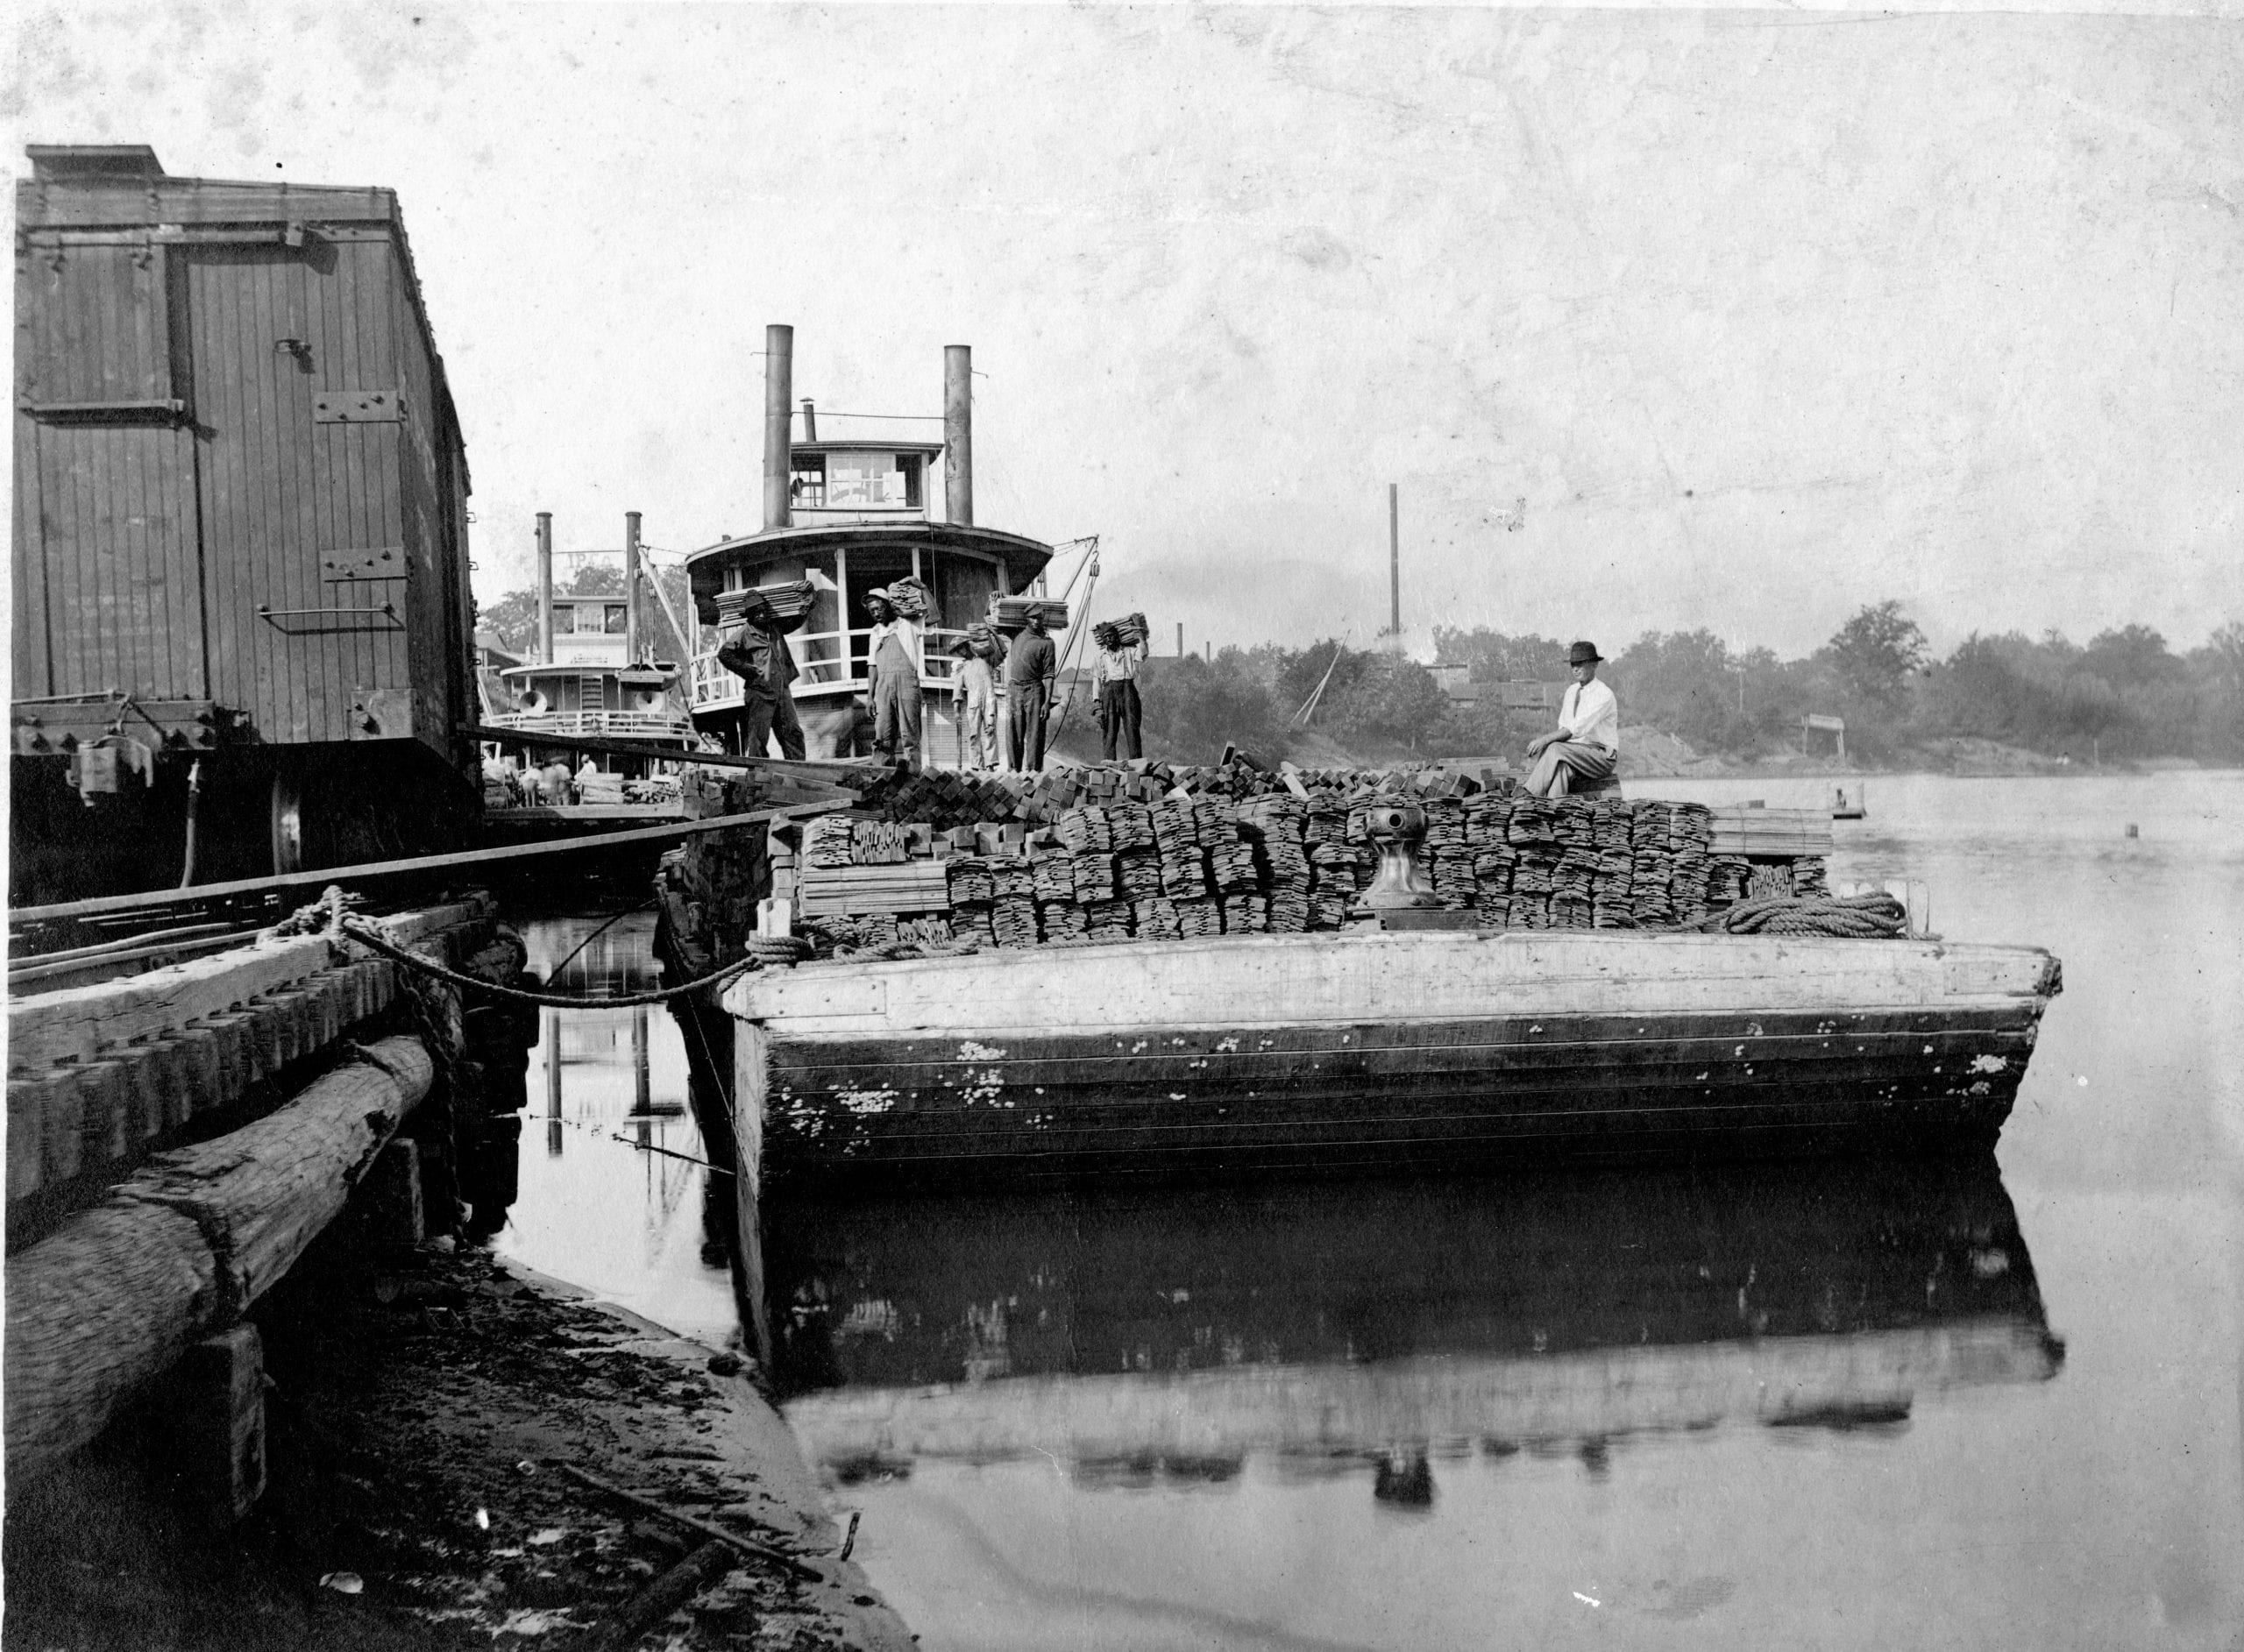 1924 – Lumber Barge Loaded